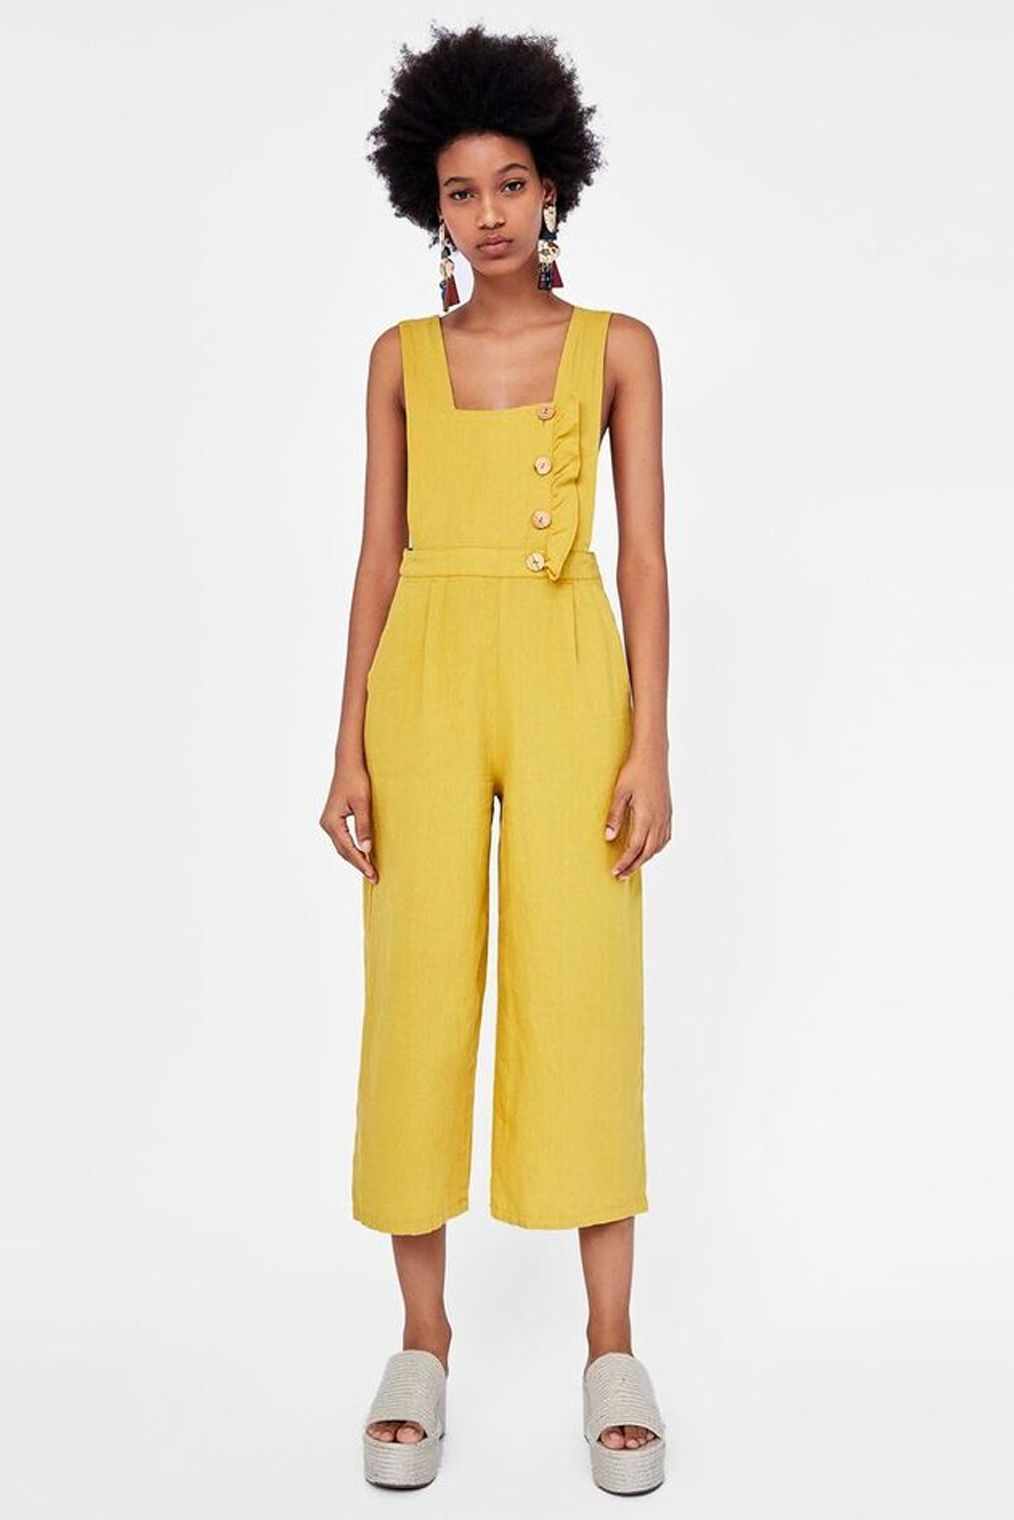 70165995b9 The Pool - Fashion - The best overalls – and what to wear them with Zara  yellow dungarees